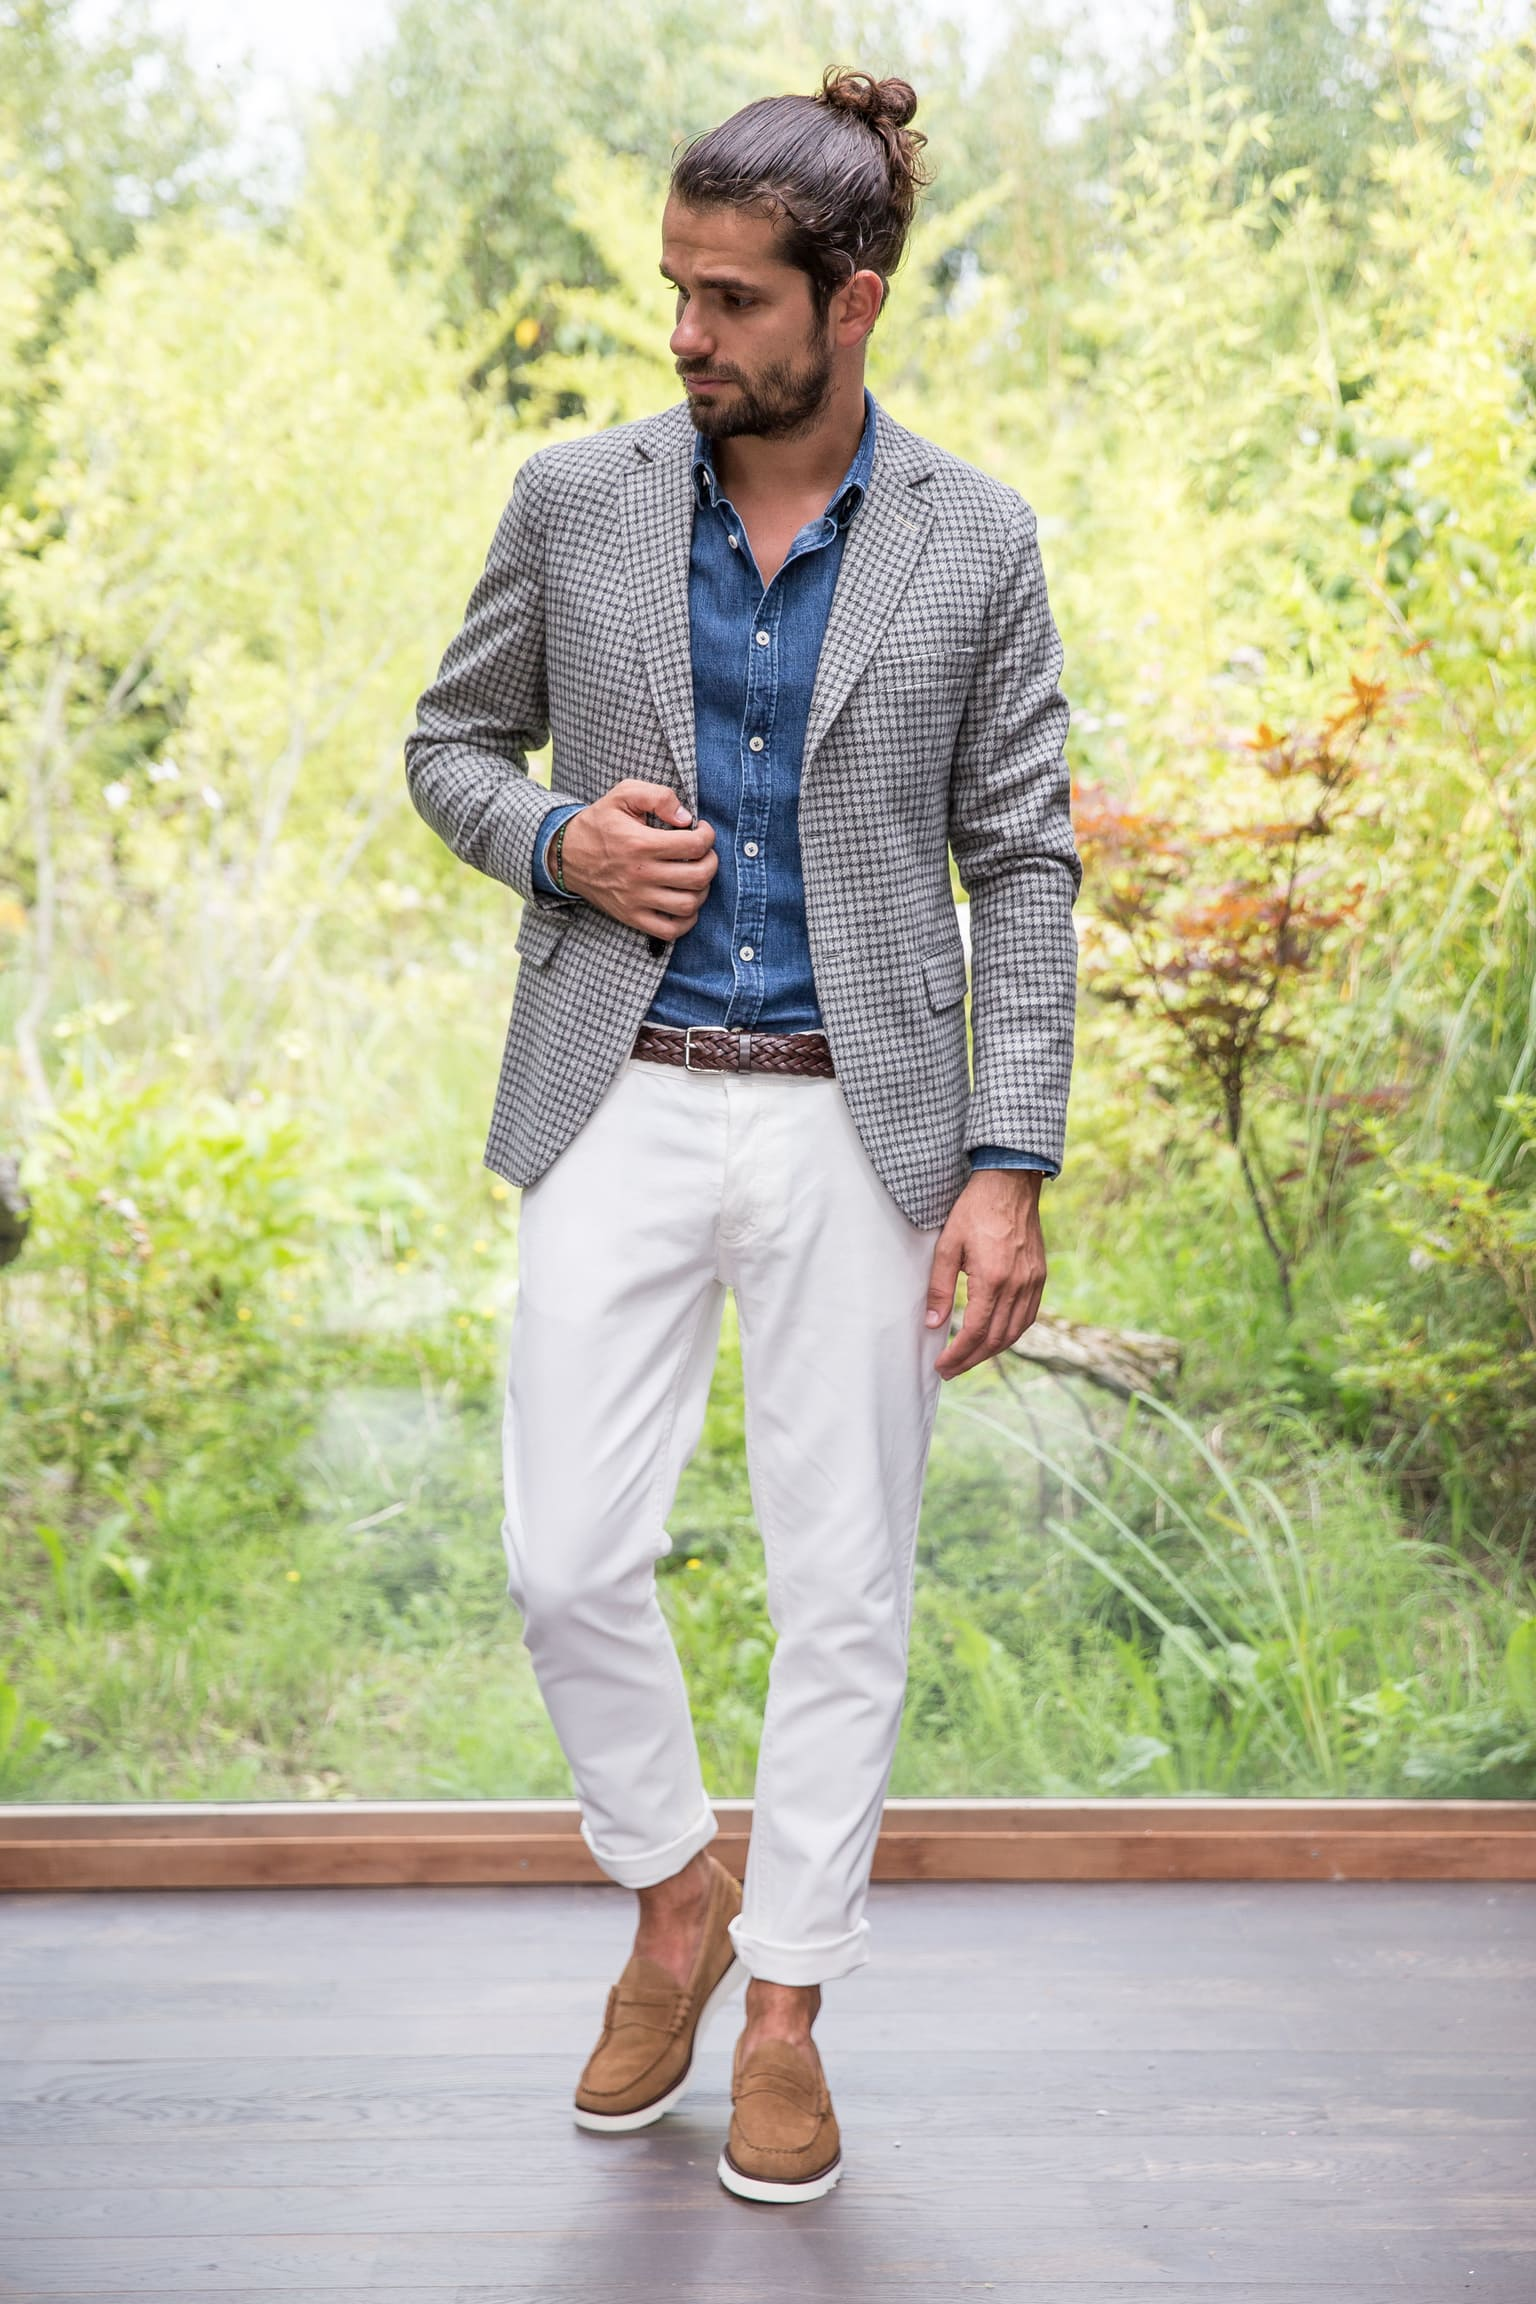 exemple de tenue casual chic slim-fit sprezzatura stylisme by Borasification